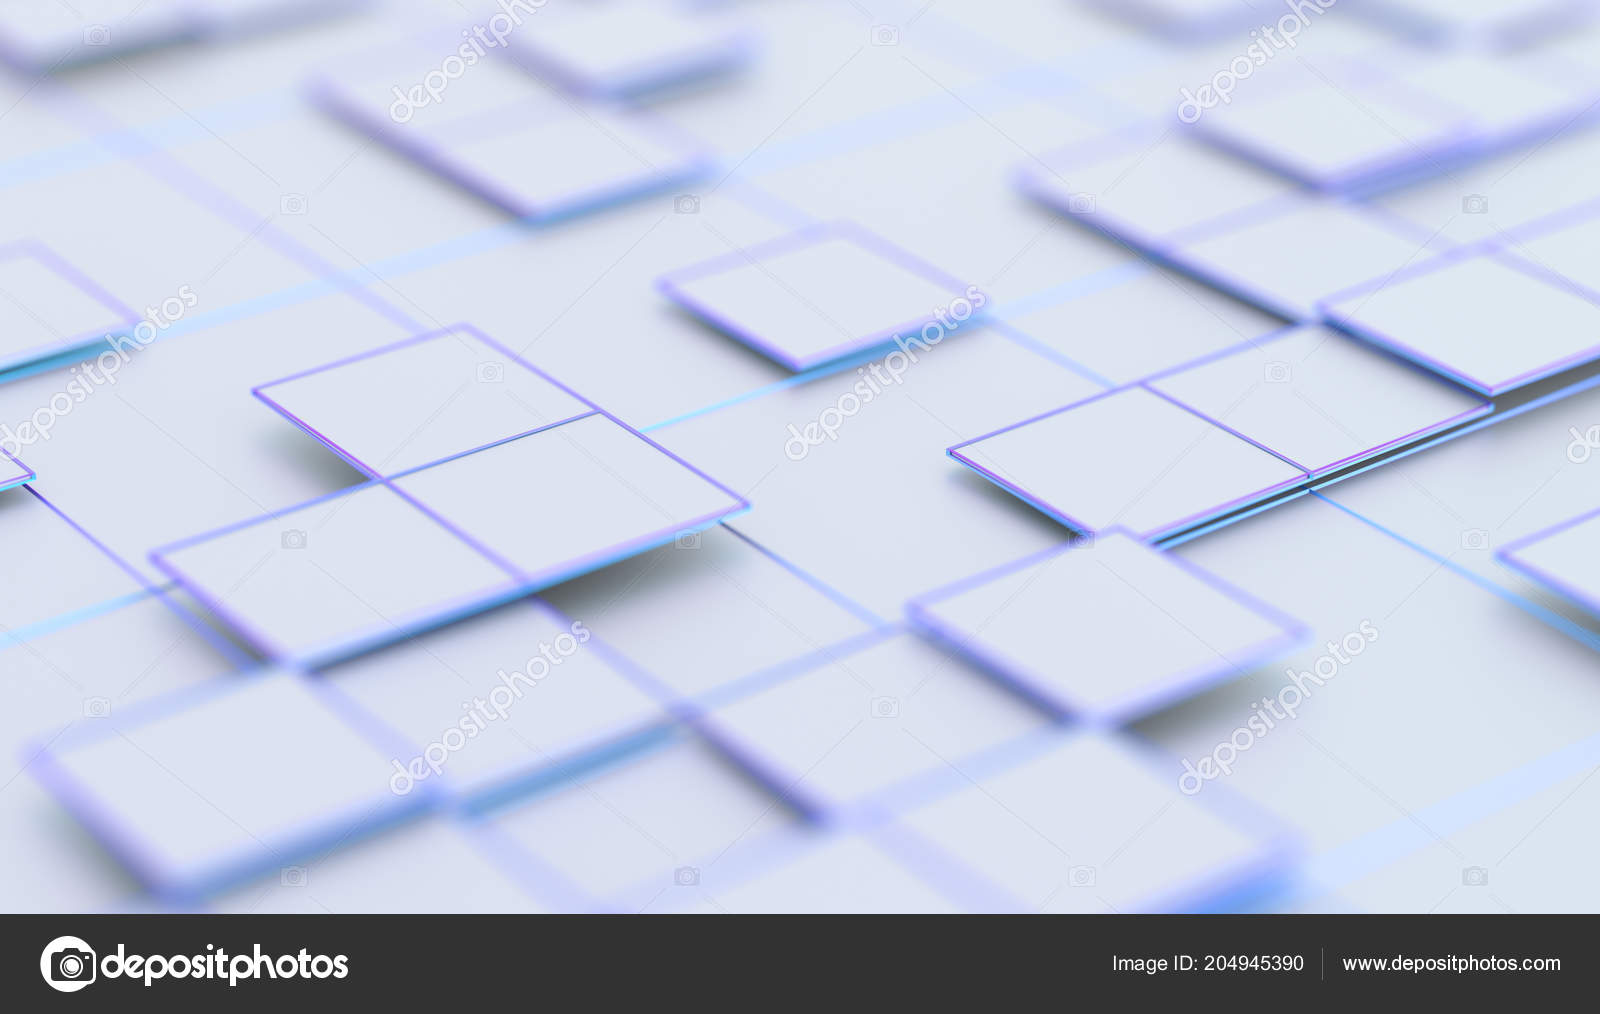 Placard Crossword Abstract 3d Rendering Of Geometric Surface Stock Photo